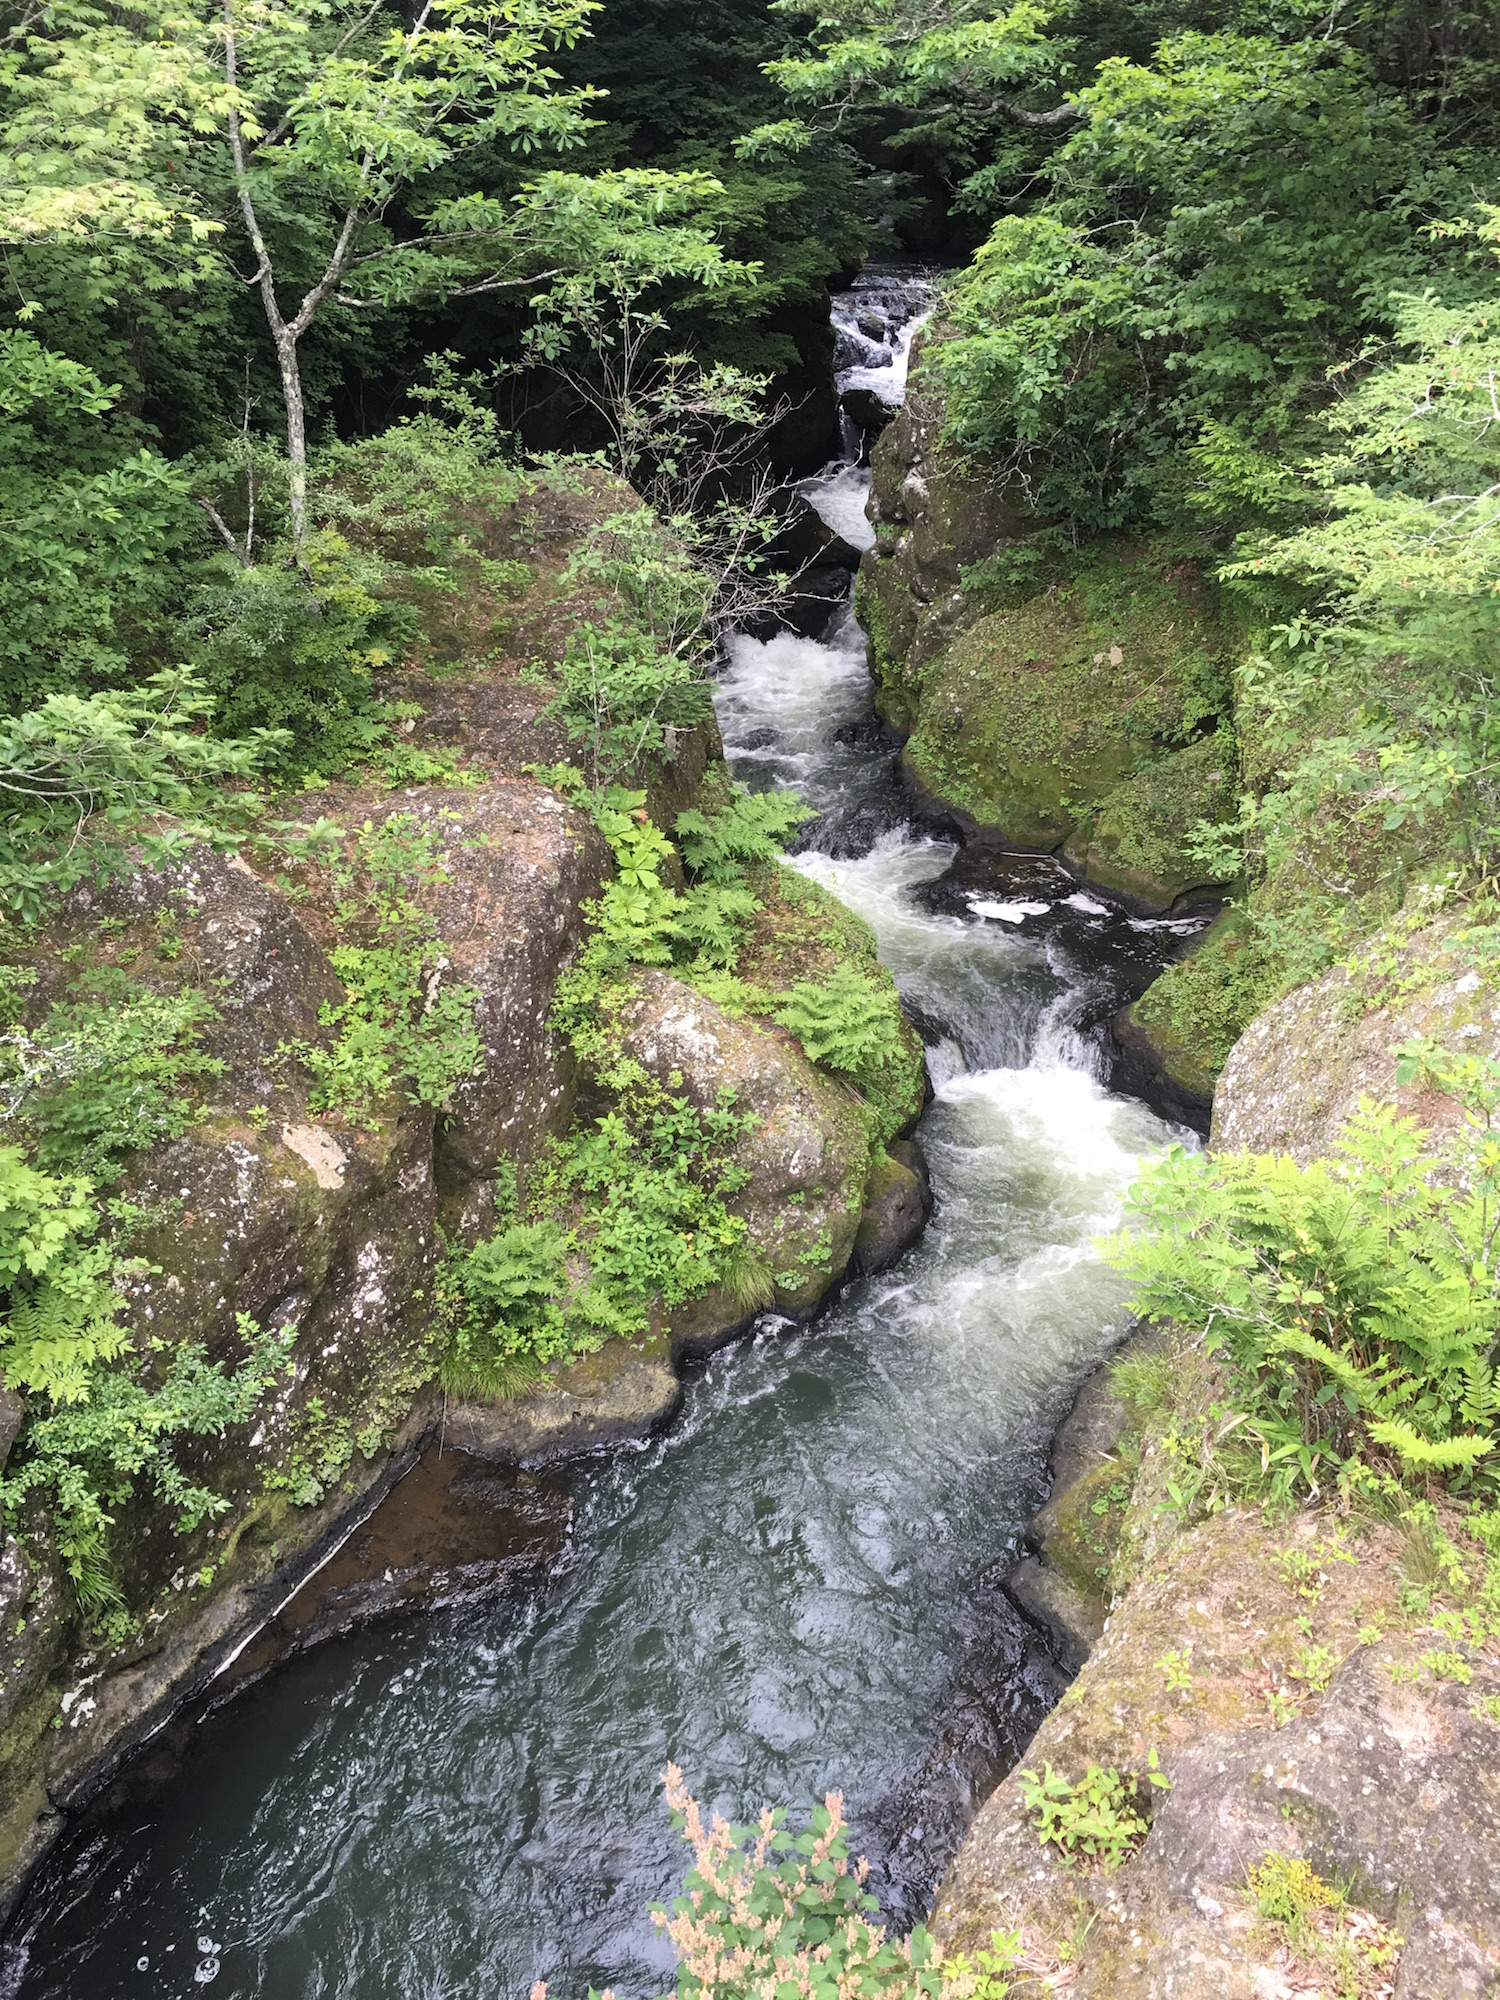 The river flowing out of the highlands towards Nikko